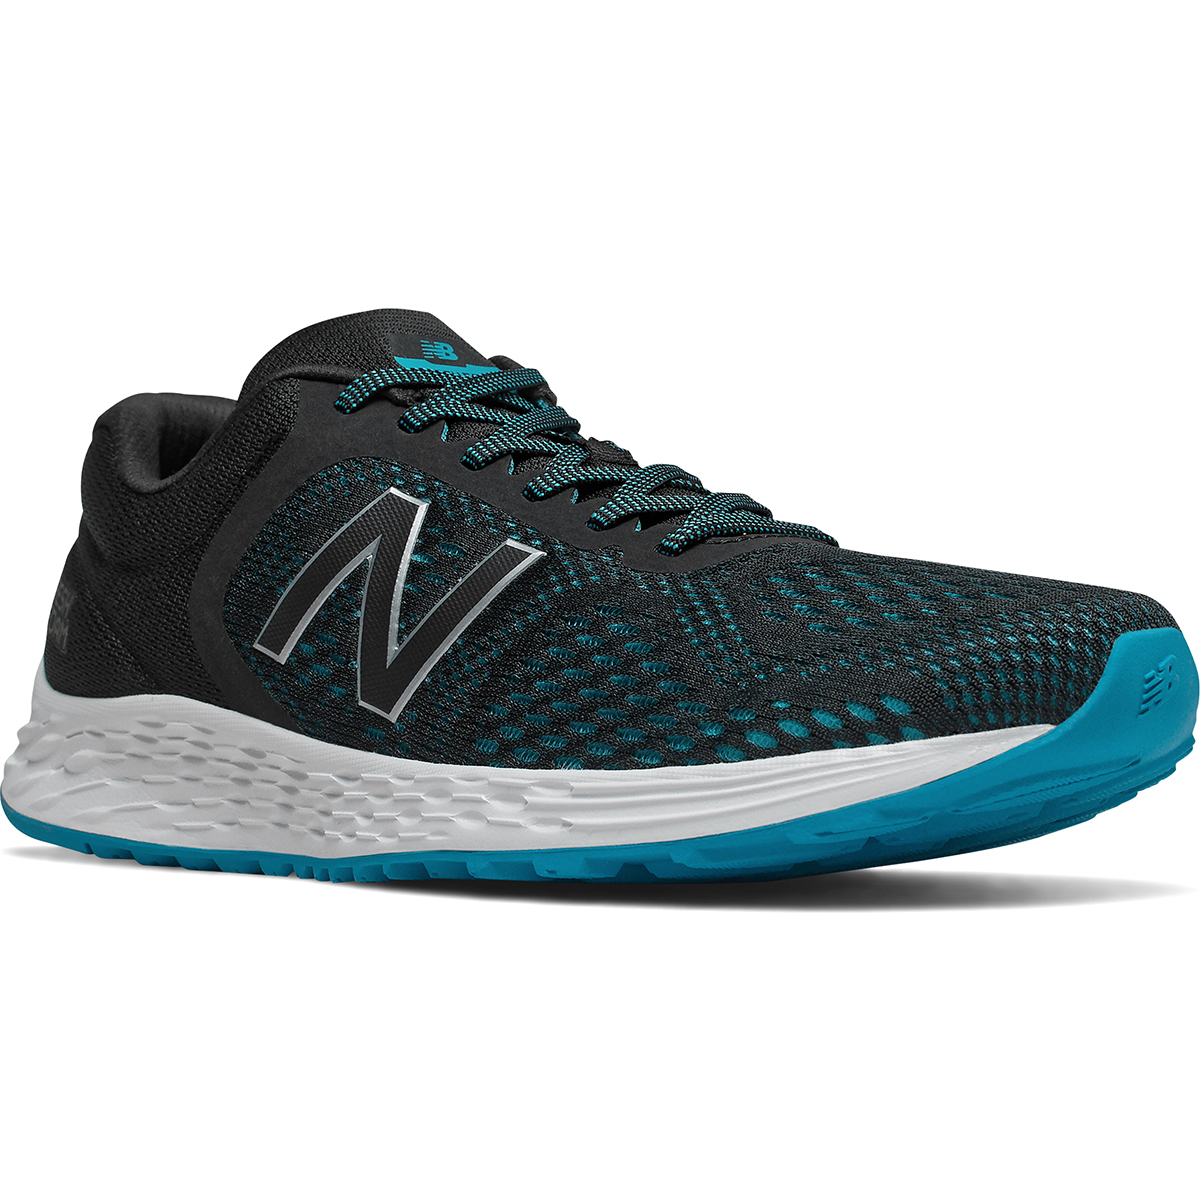 New Balance Men's Fresh Foam Arishi V2 Sneaker, Wide Width - Black, 7.5